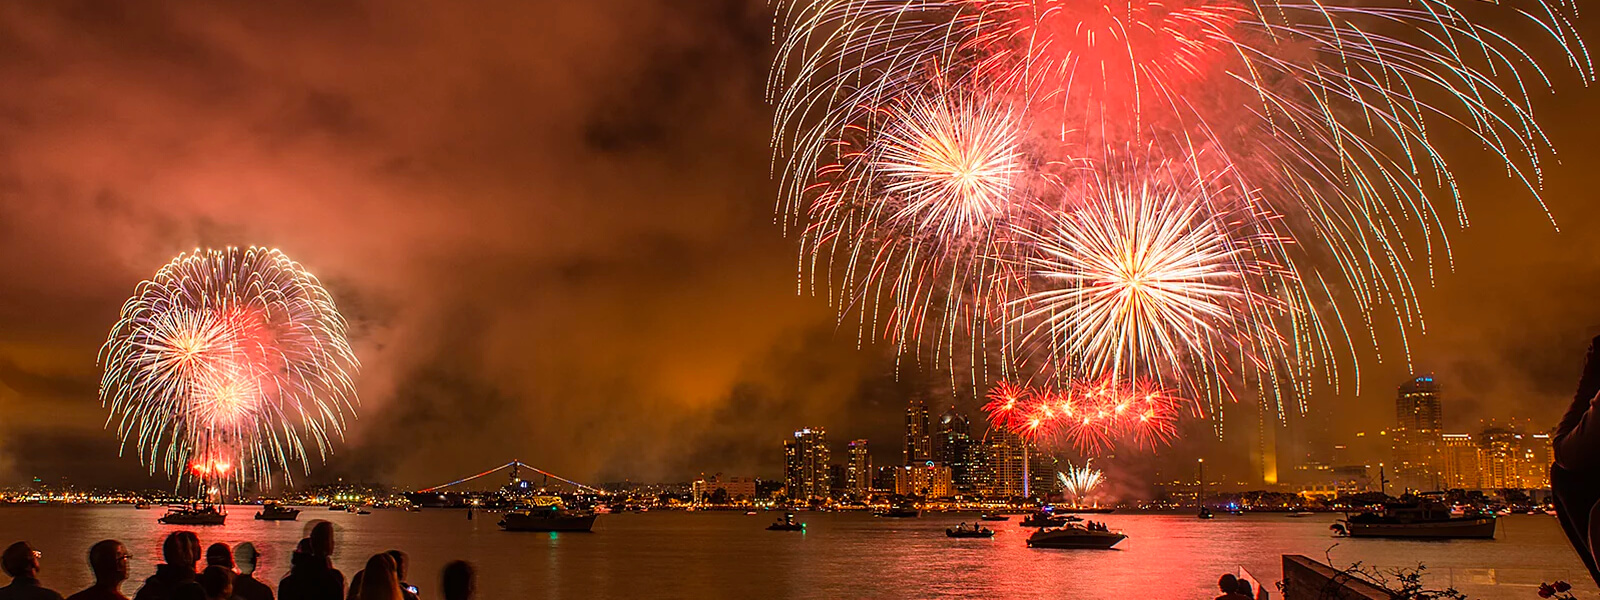 YachtLife's top Yachting Activities in San Diego - July 4th Fireworks